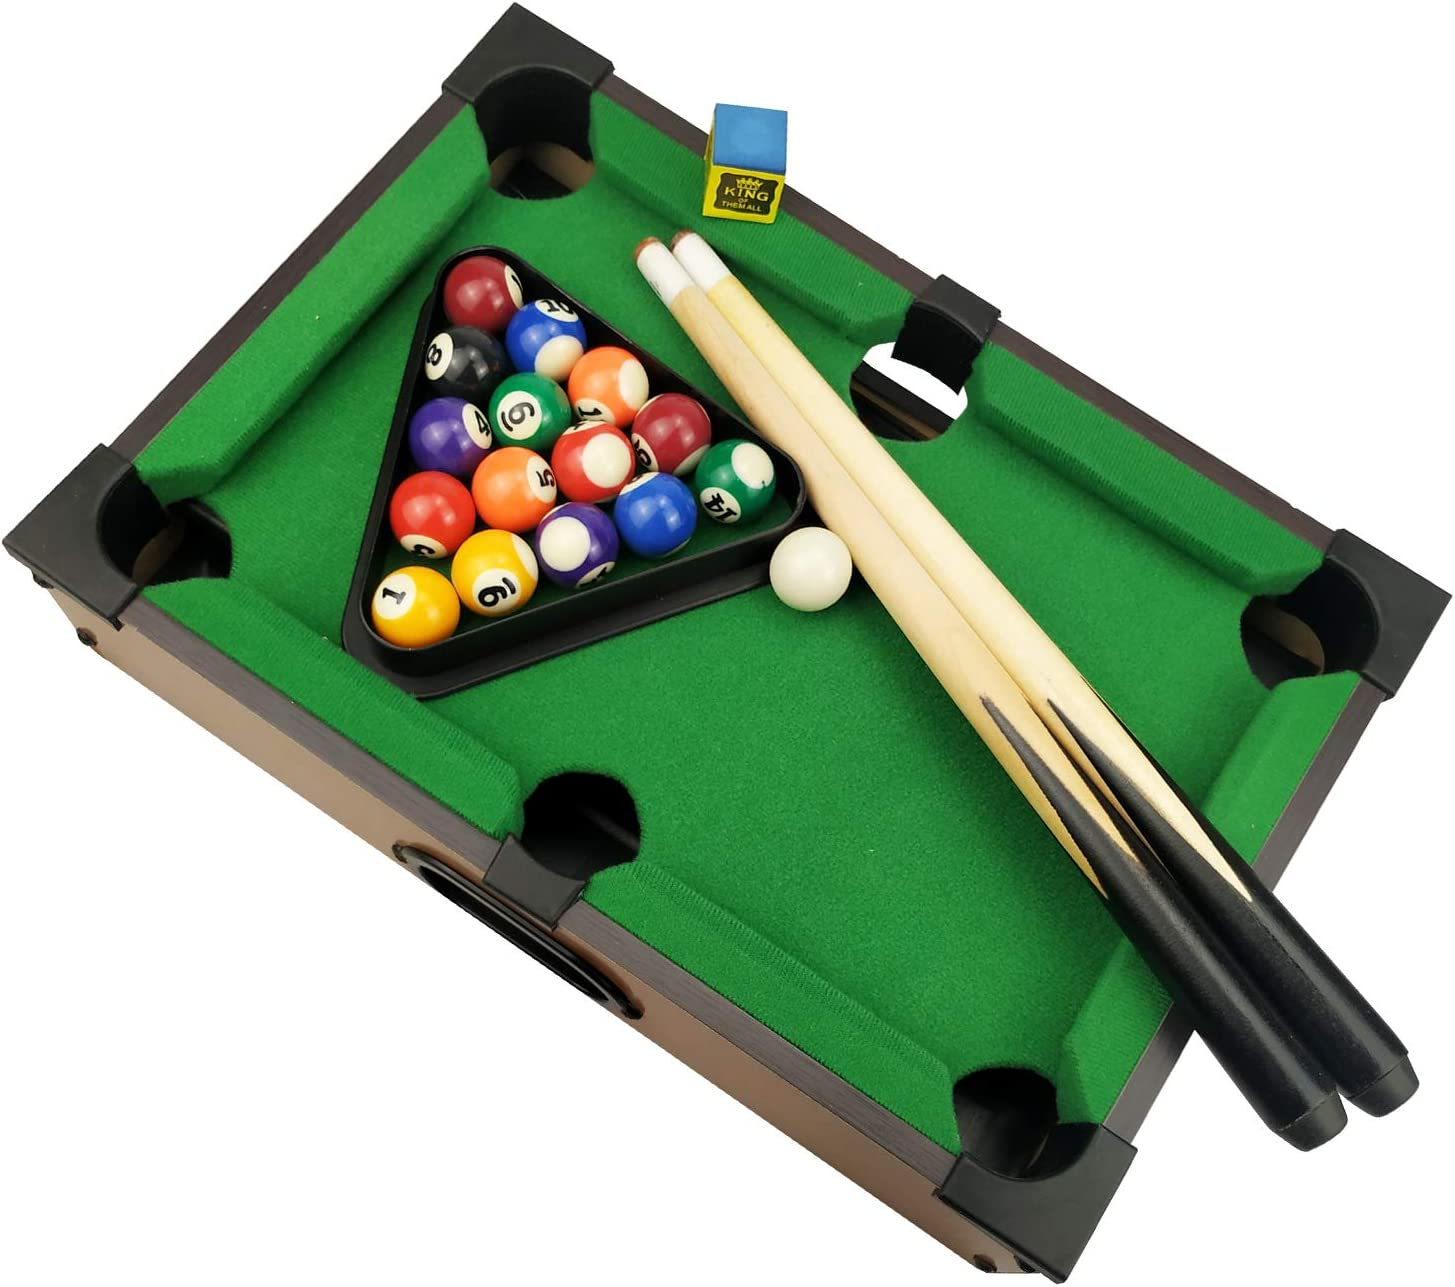 Benfu Mini Table Billiards Game, Home and Office Desktop Billiards Game, Including Pool Table 15 Colorful Balls, 1 Cue Ball, 2 Billiard Sticks, 1 Chalk Triangle Cube